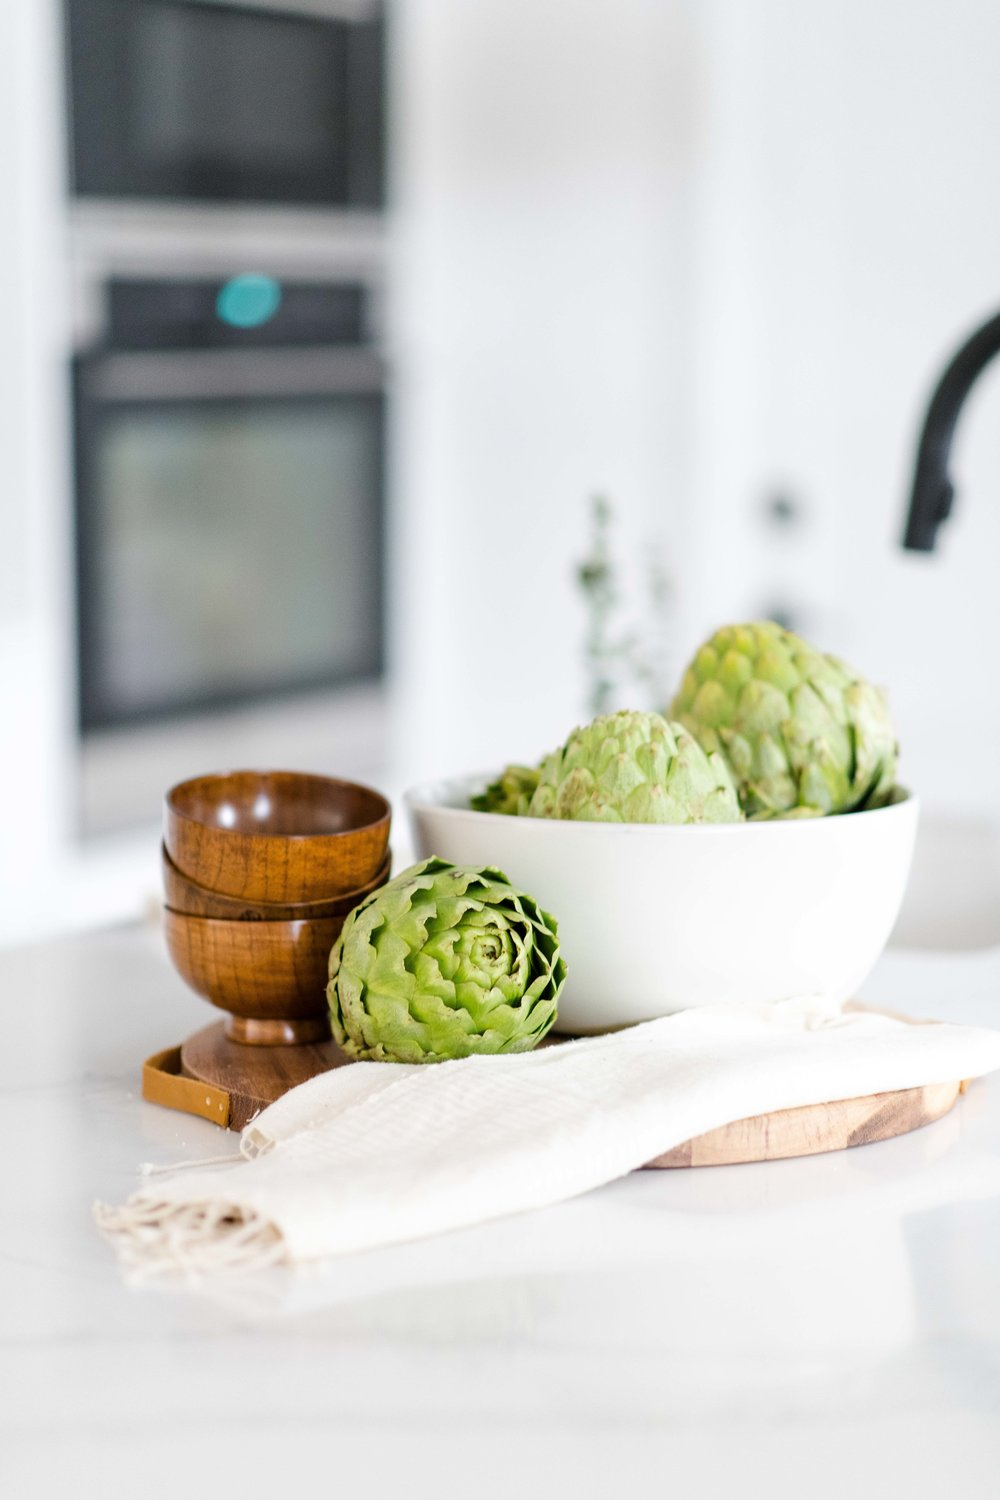 kitchen styling with artichokes - the habitat collective interior design - #projectpeachy